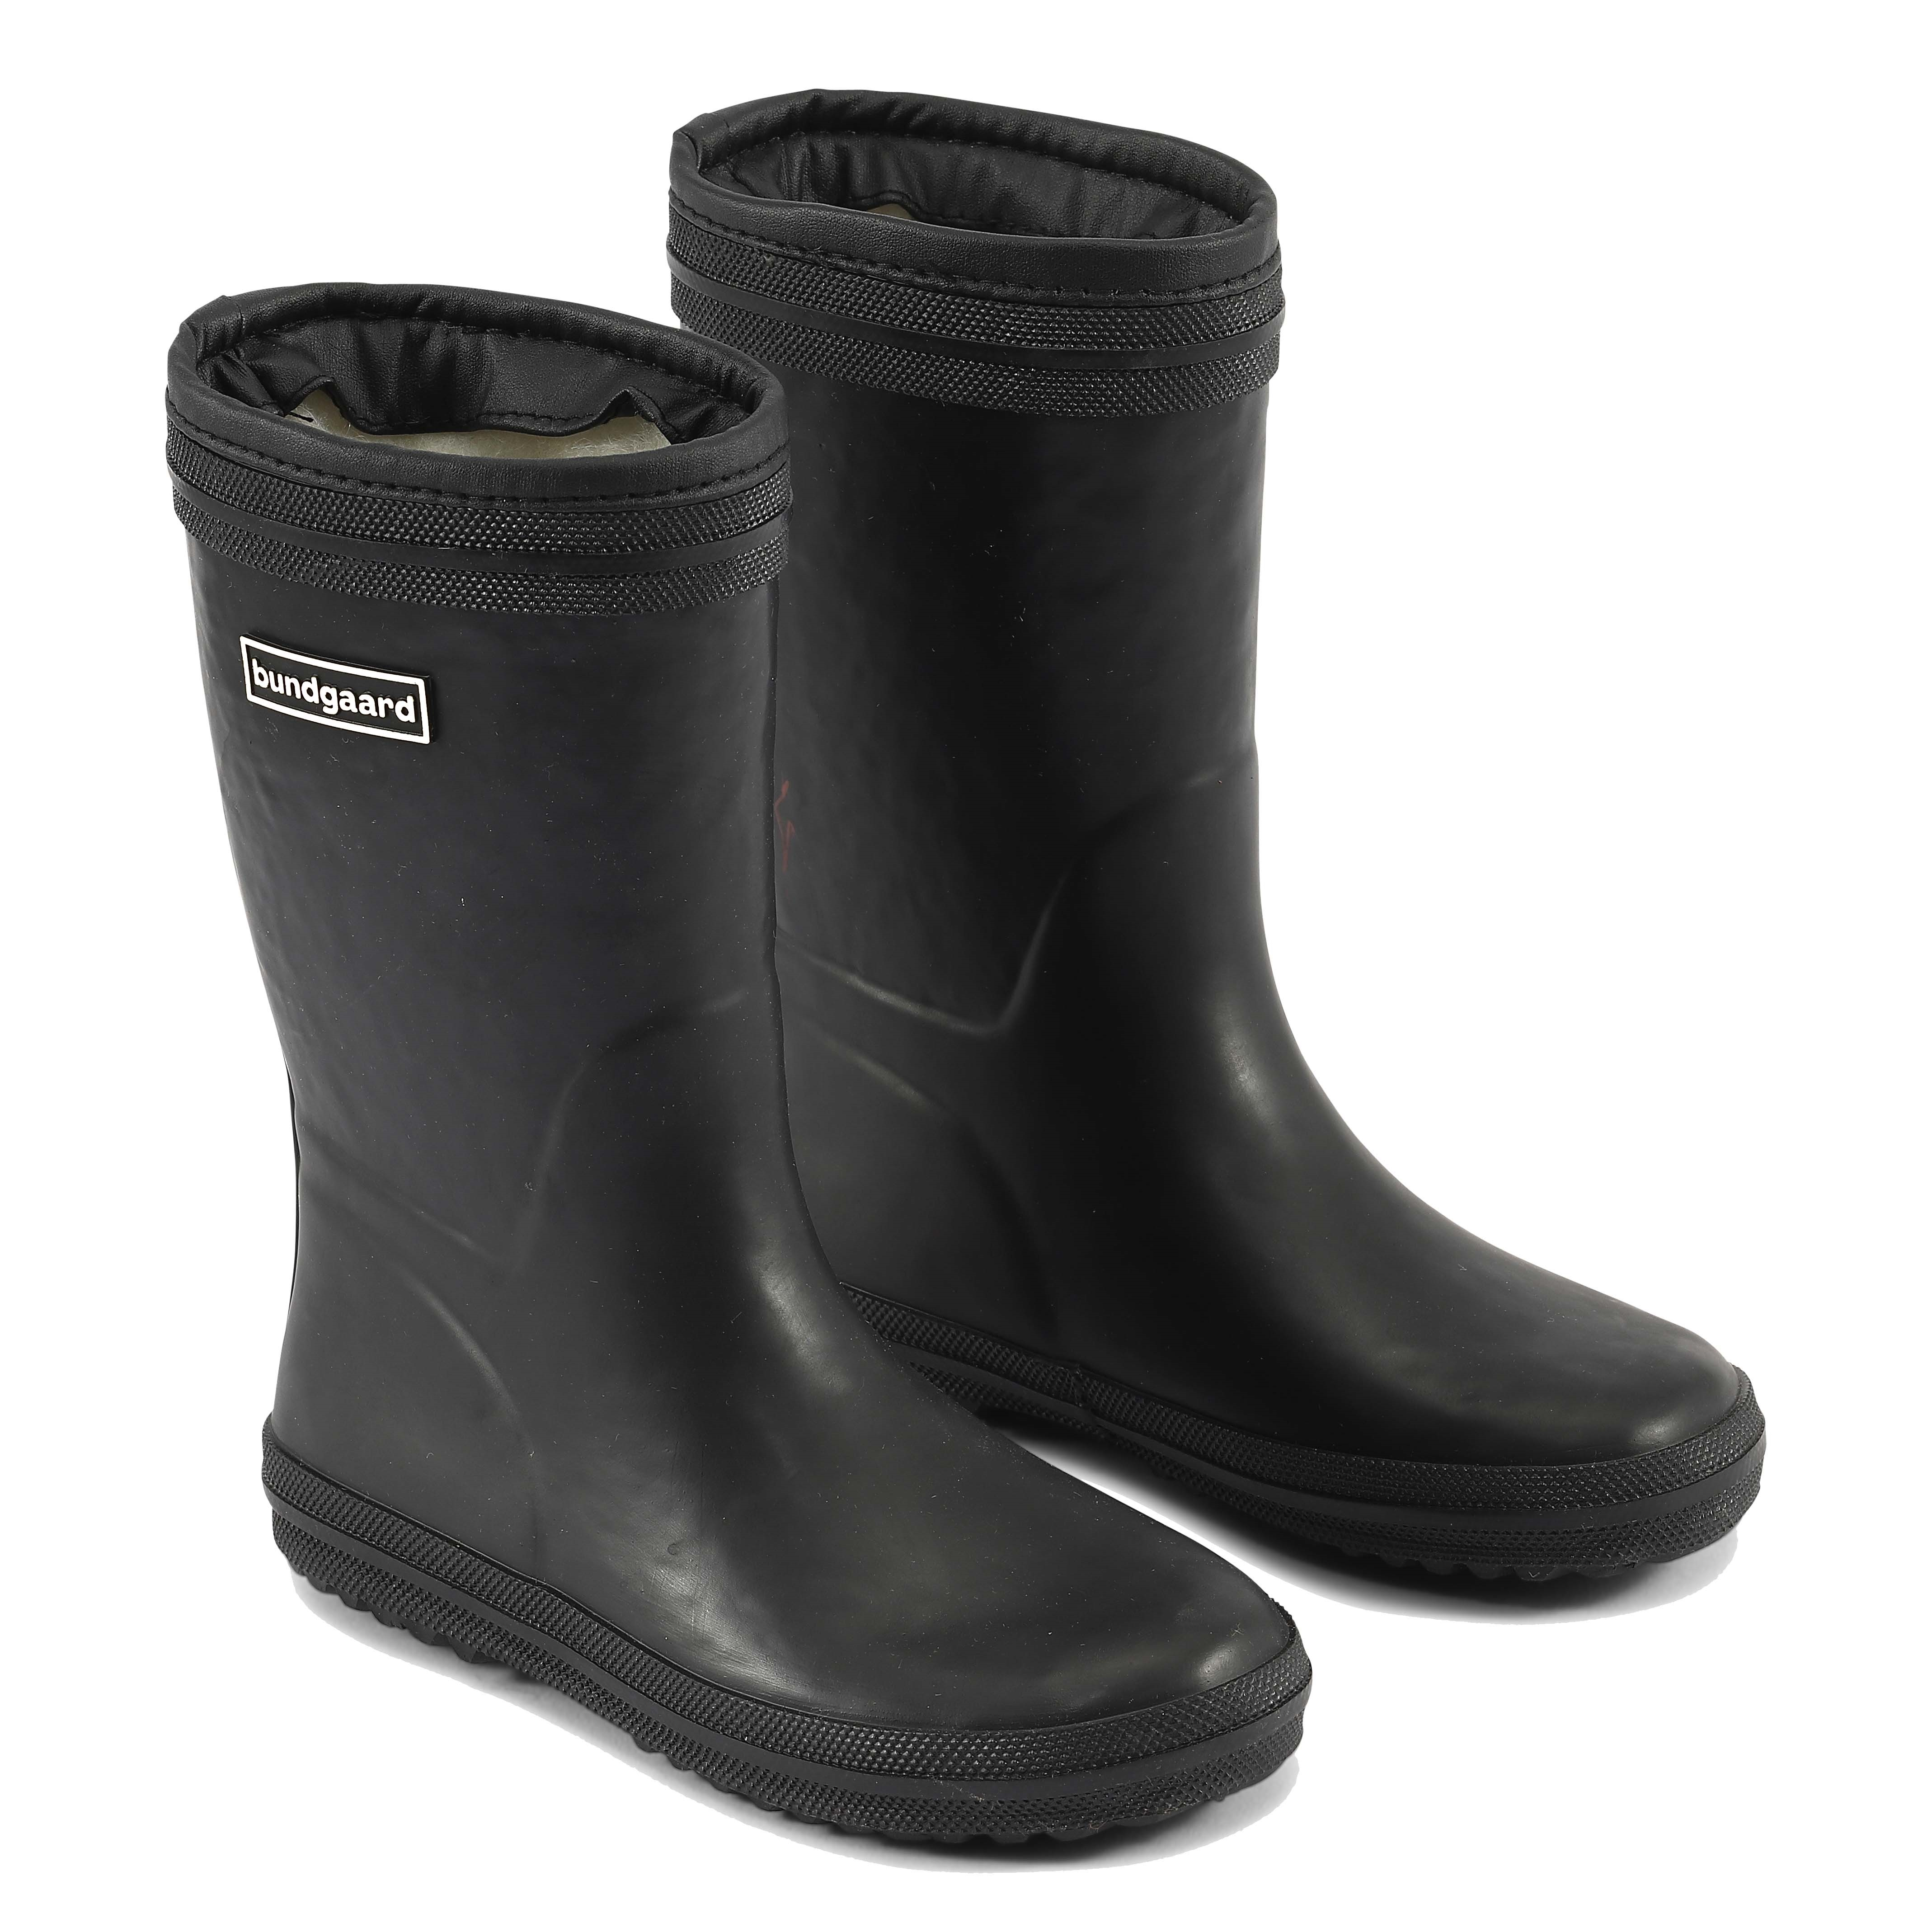 Bundgaard Rubber Boot Tween Warm Sort